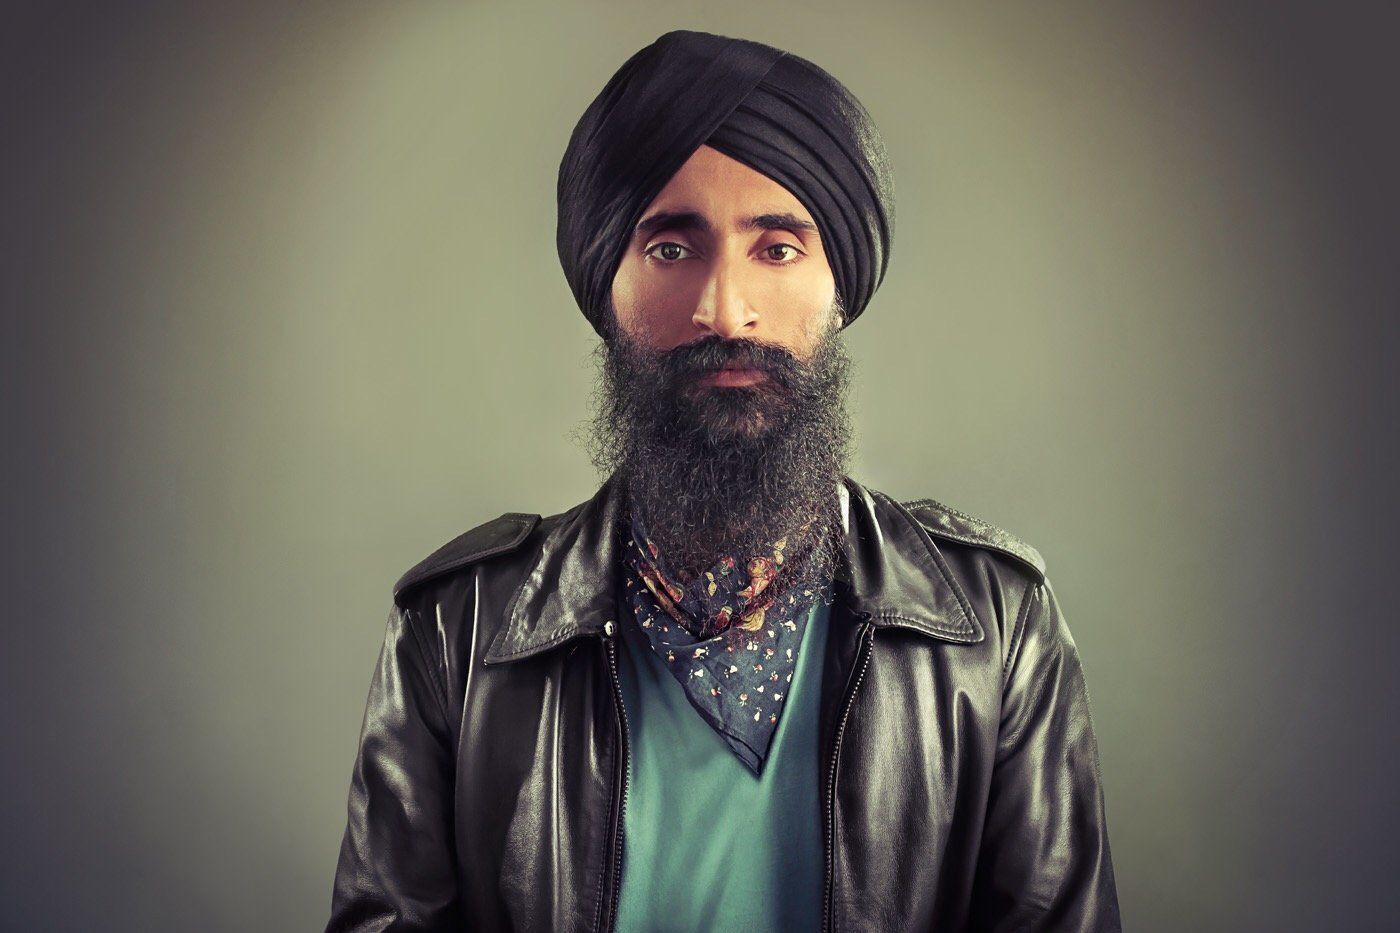 "<a href=""https://en.wikipedia.org/wiki/Waris_Ahluwalia"" target=""_blank"">Waris Ahluwalia</a> is an actor, designer a"